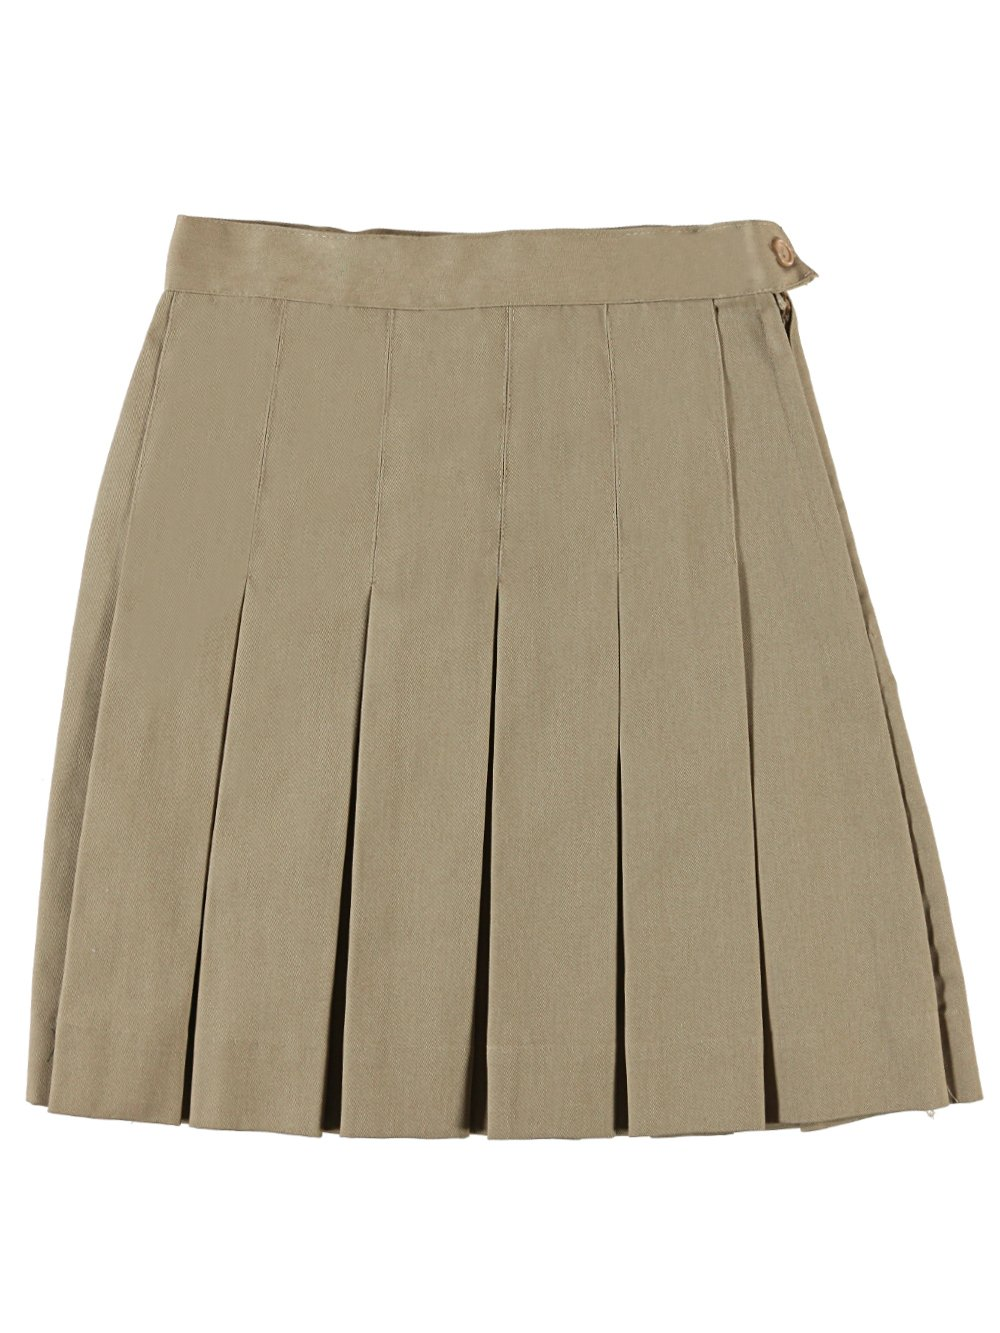 Cookie's Brand Big Girls'''Cassie'' Pleated Skirt - khaki, 7